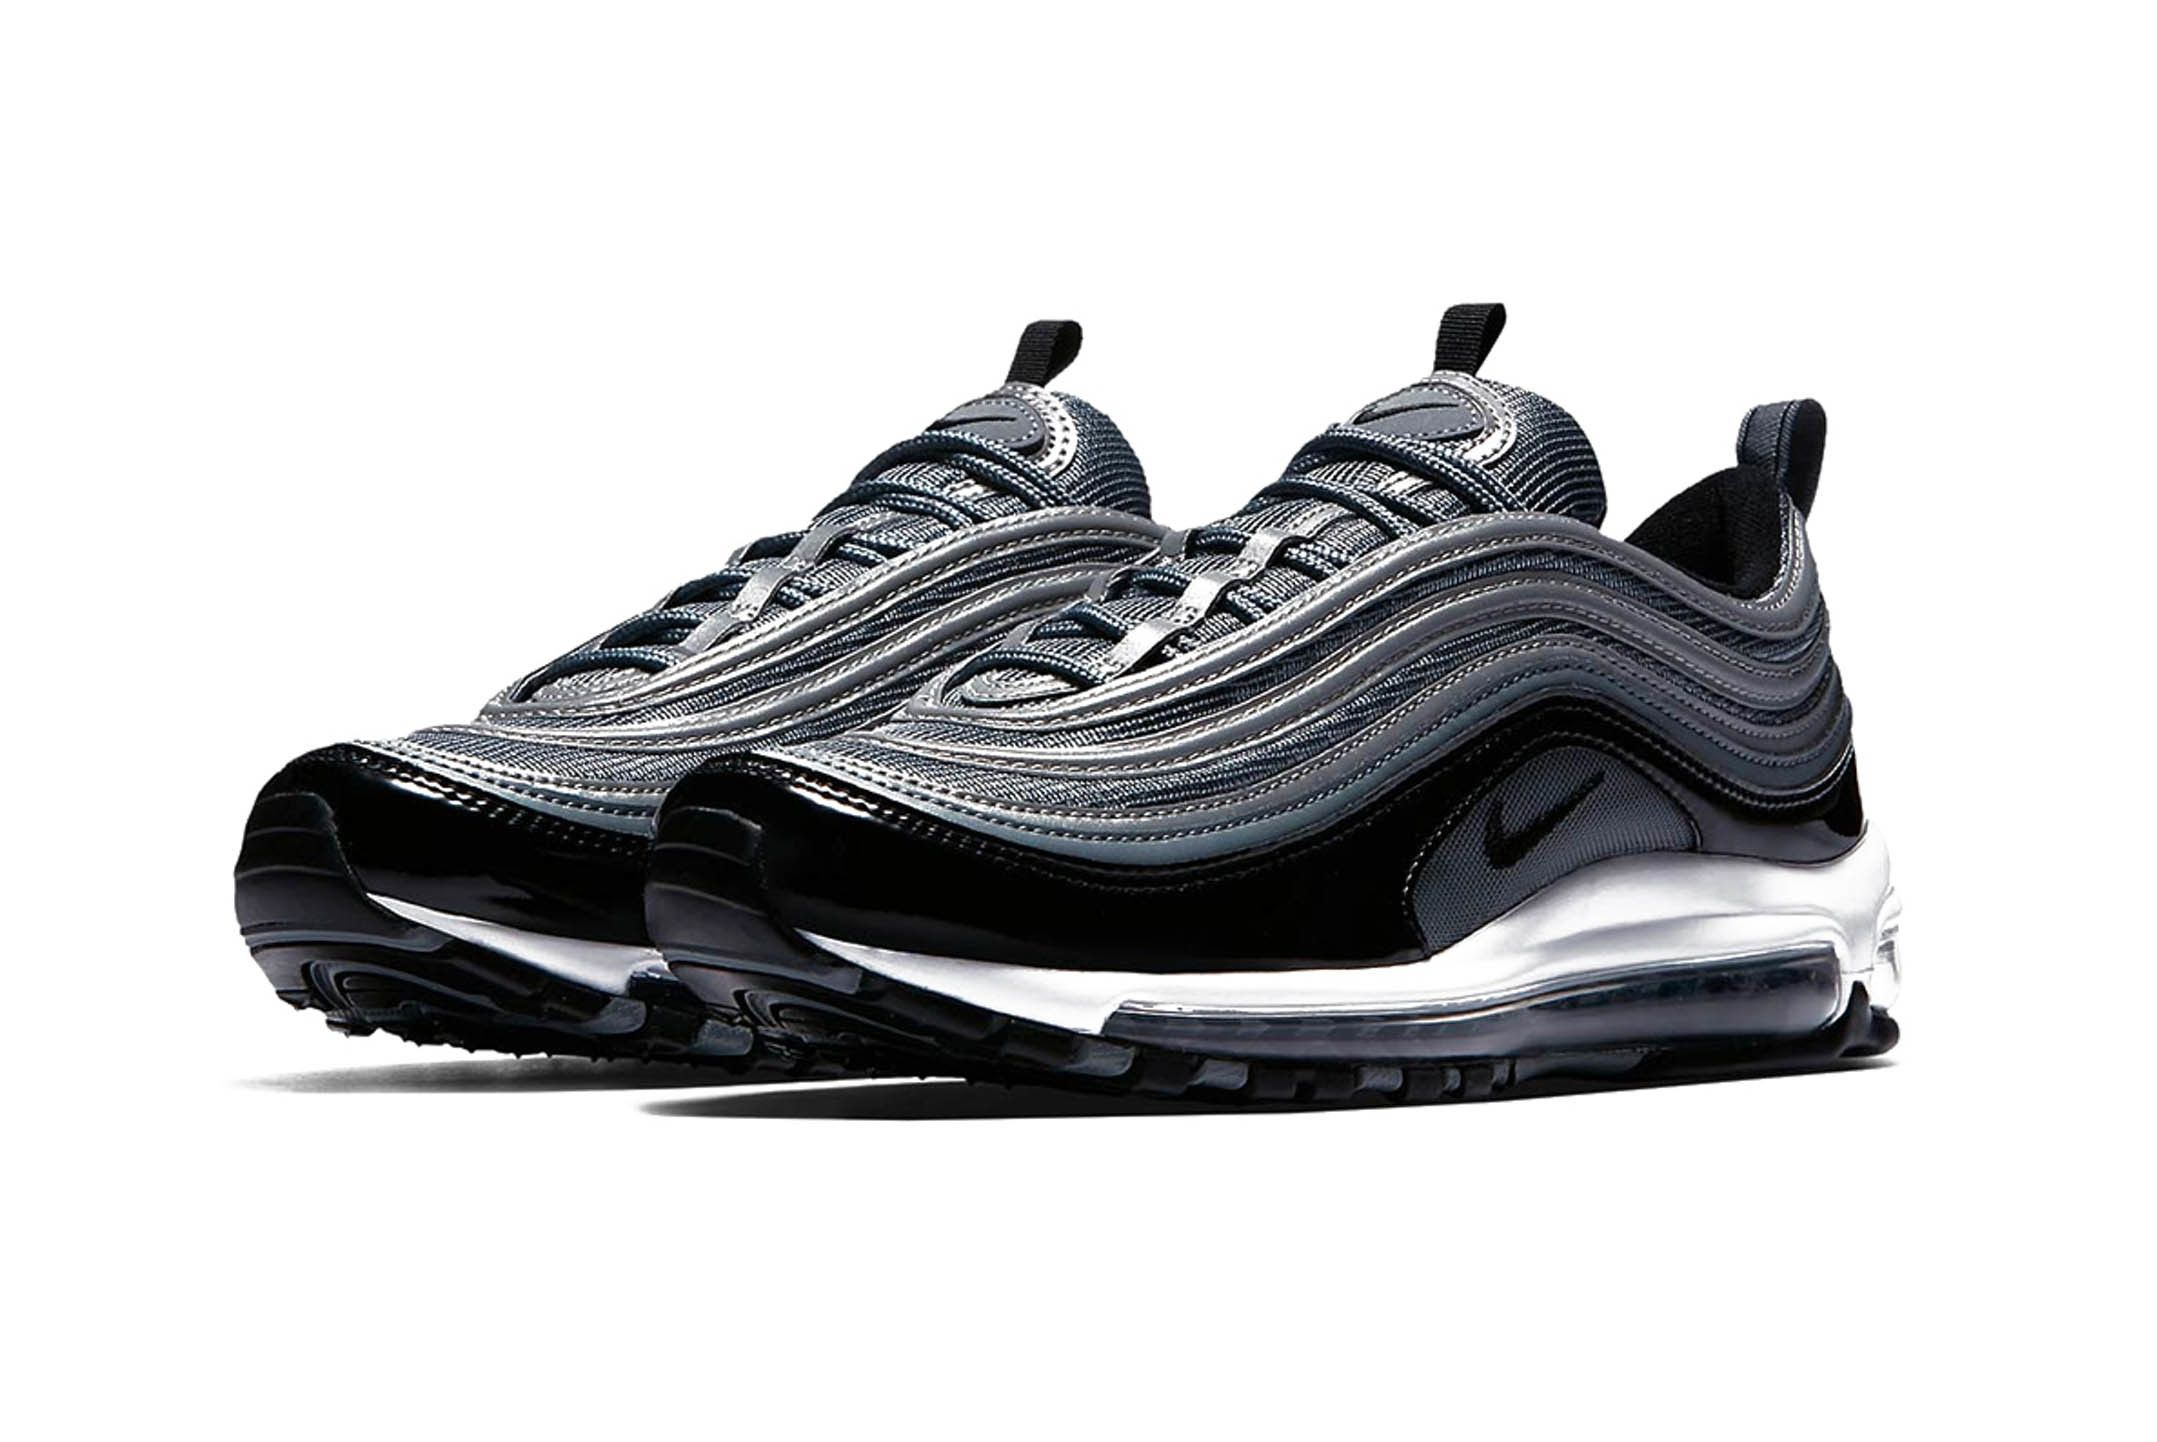 Nike Air Max 97 Black Patent Leather Release 002 Sneaker Freaker